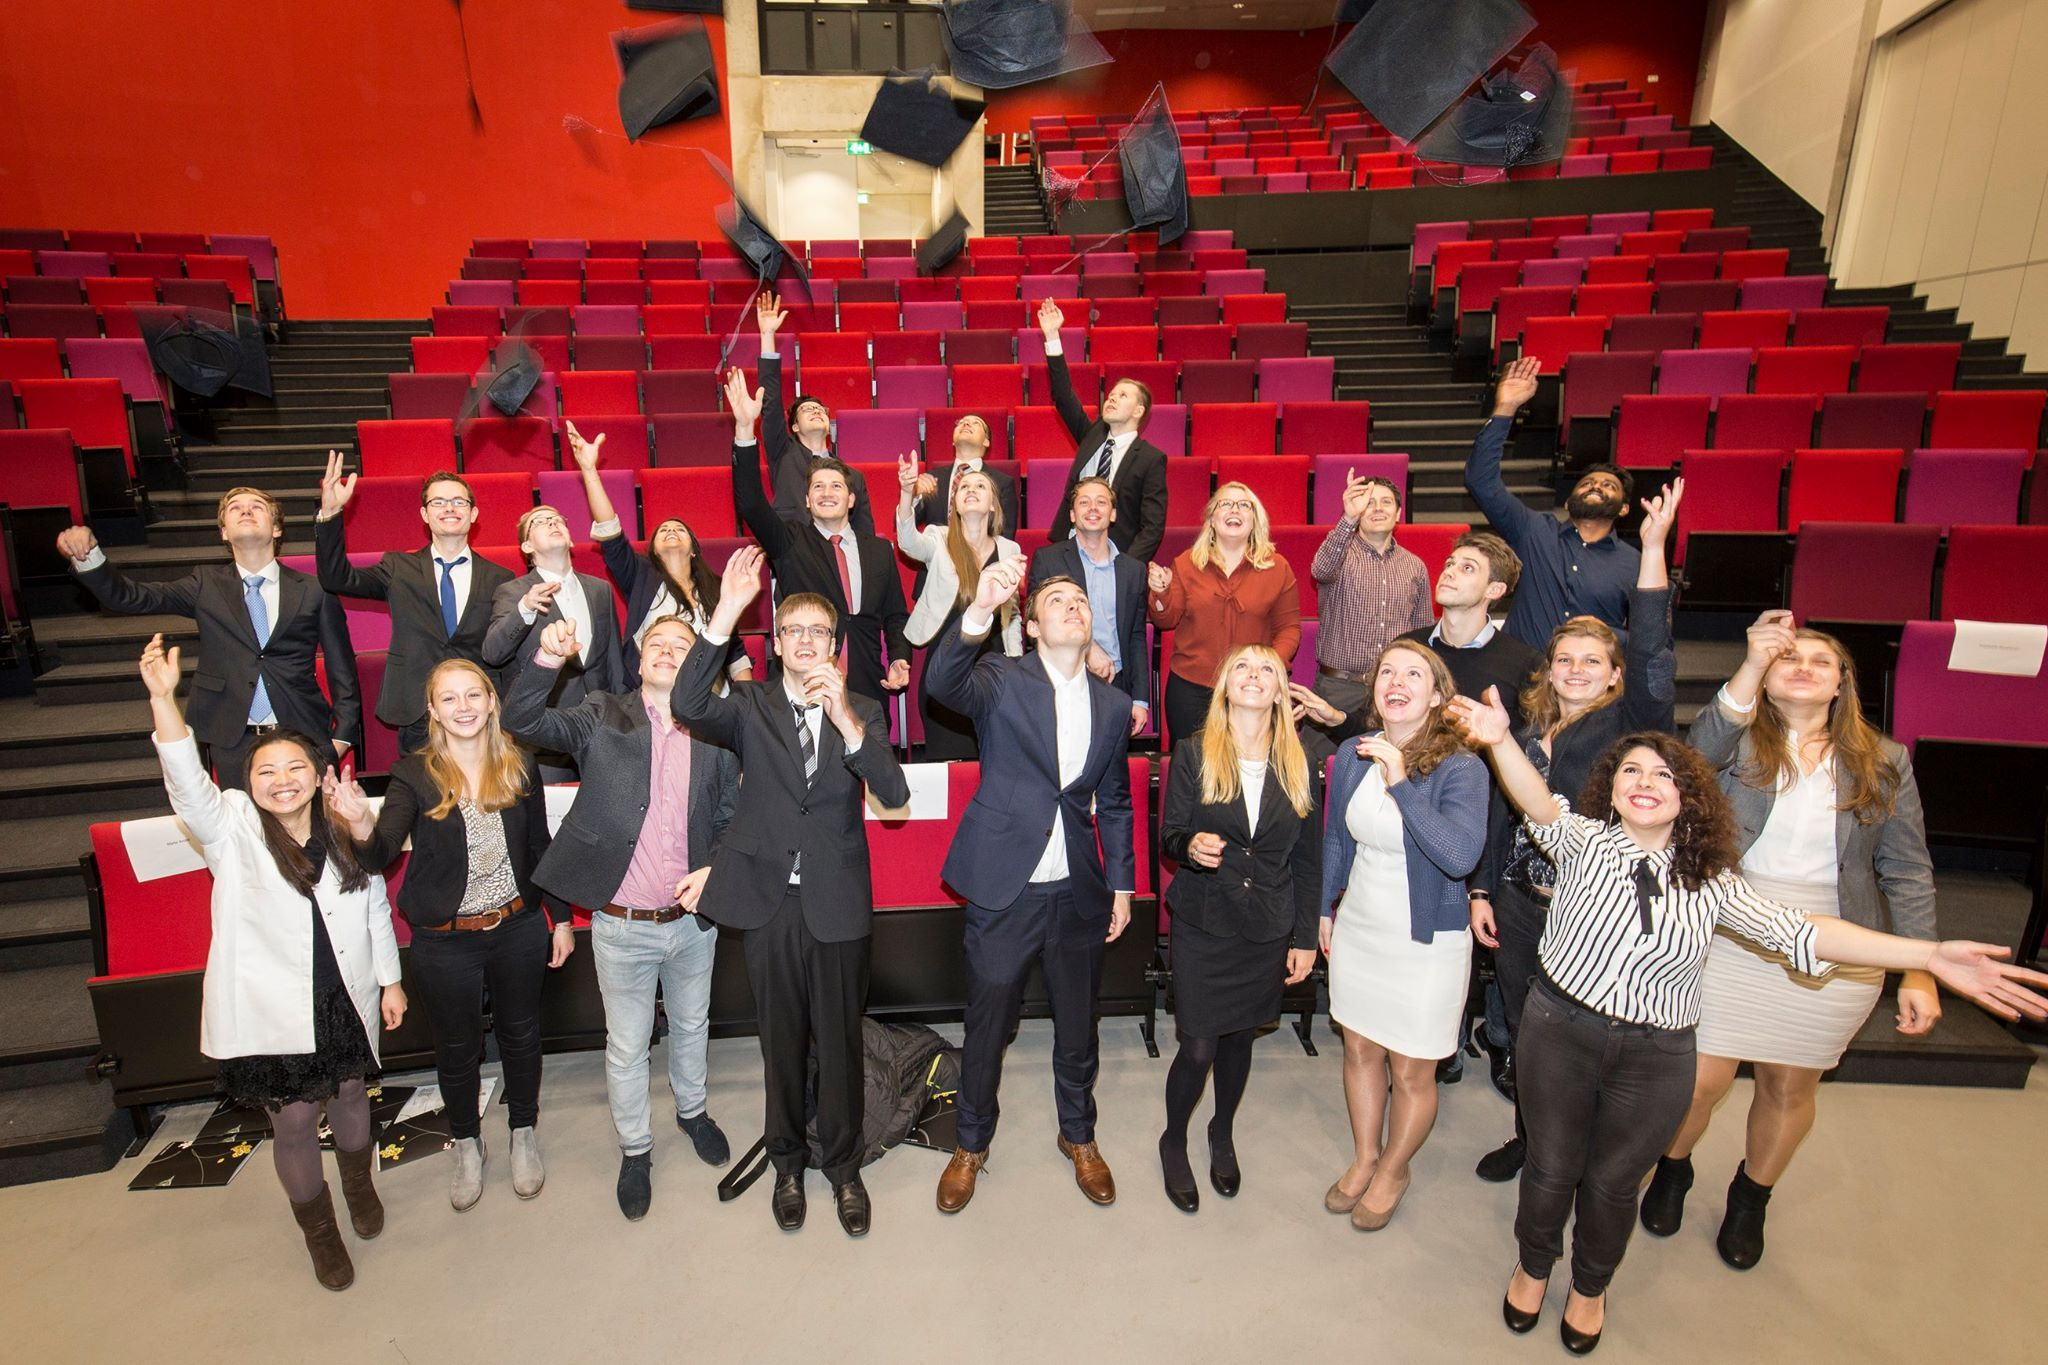 Congratulations to the new graduates from the International Business Administration (IBA) BSc Programme - a warm welcome to the UT alumni network!